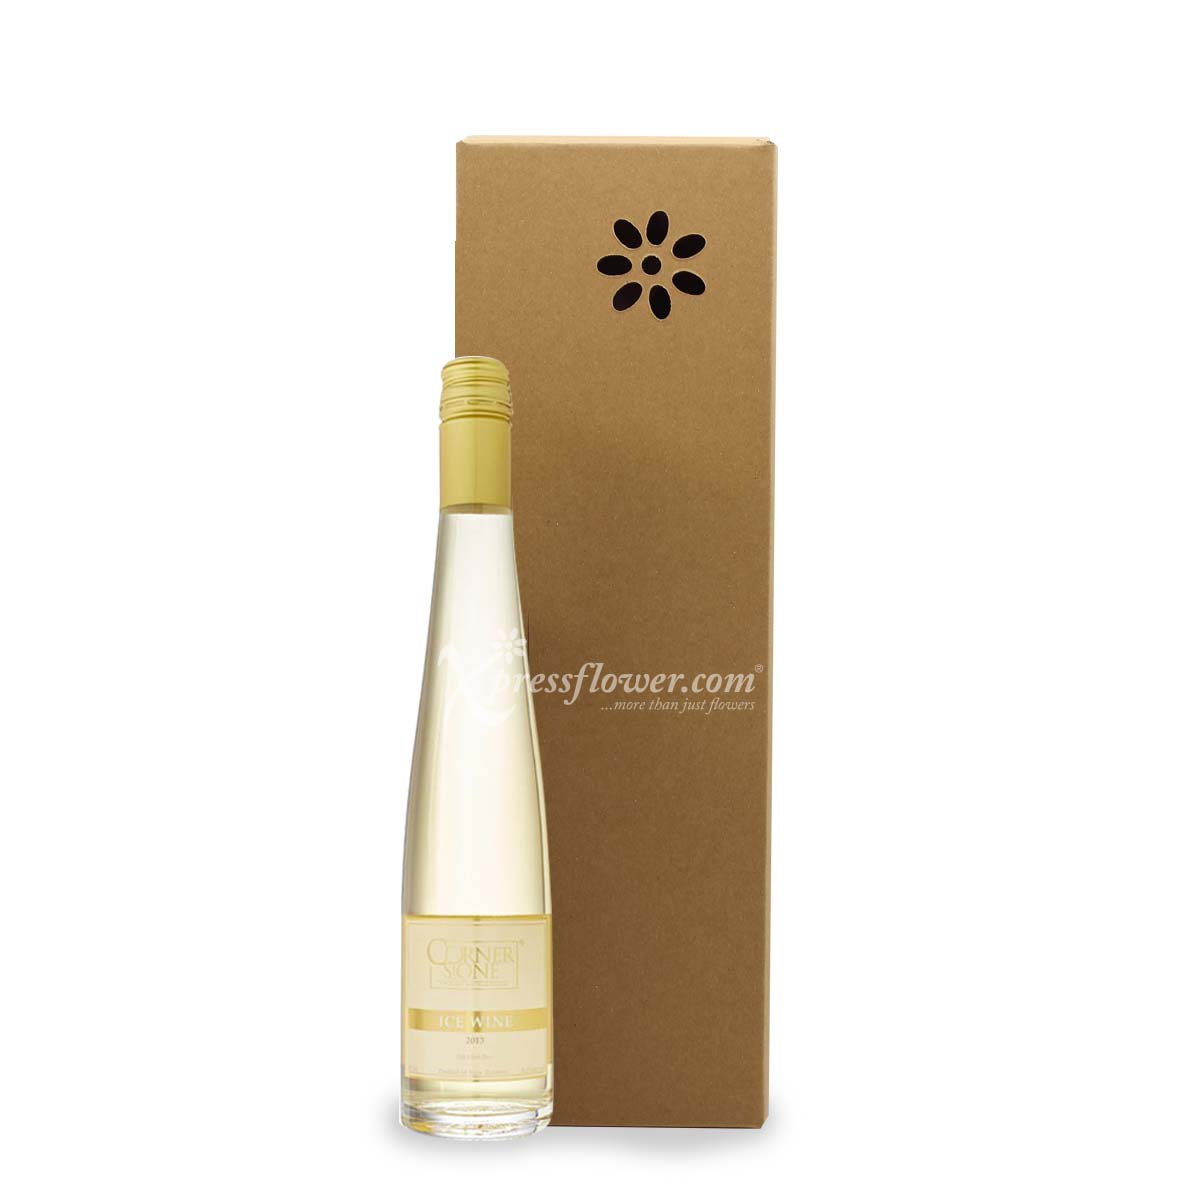 CW1803 Sunny Spirit champagne and wine